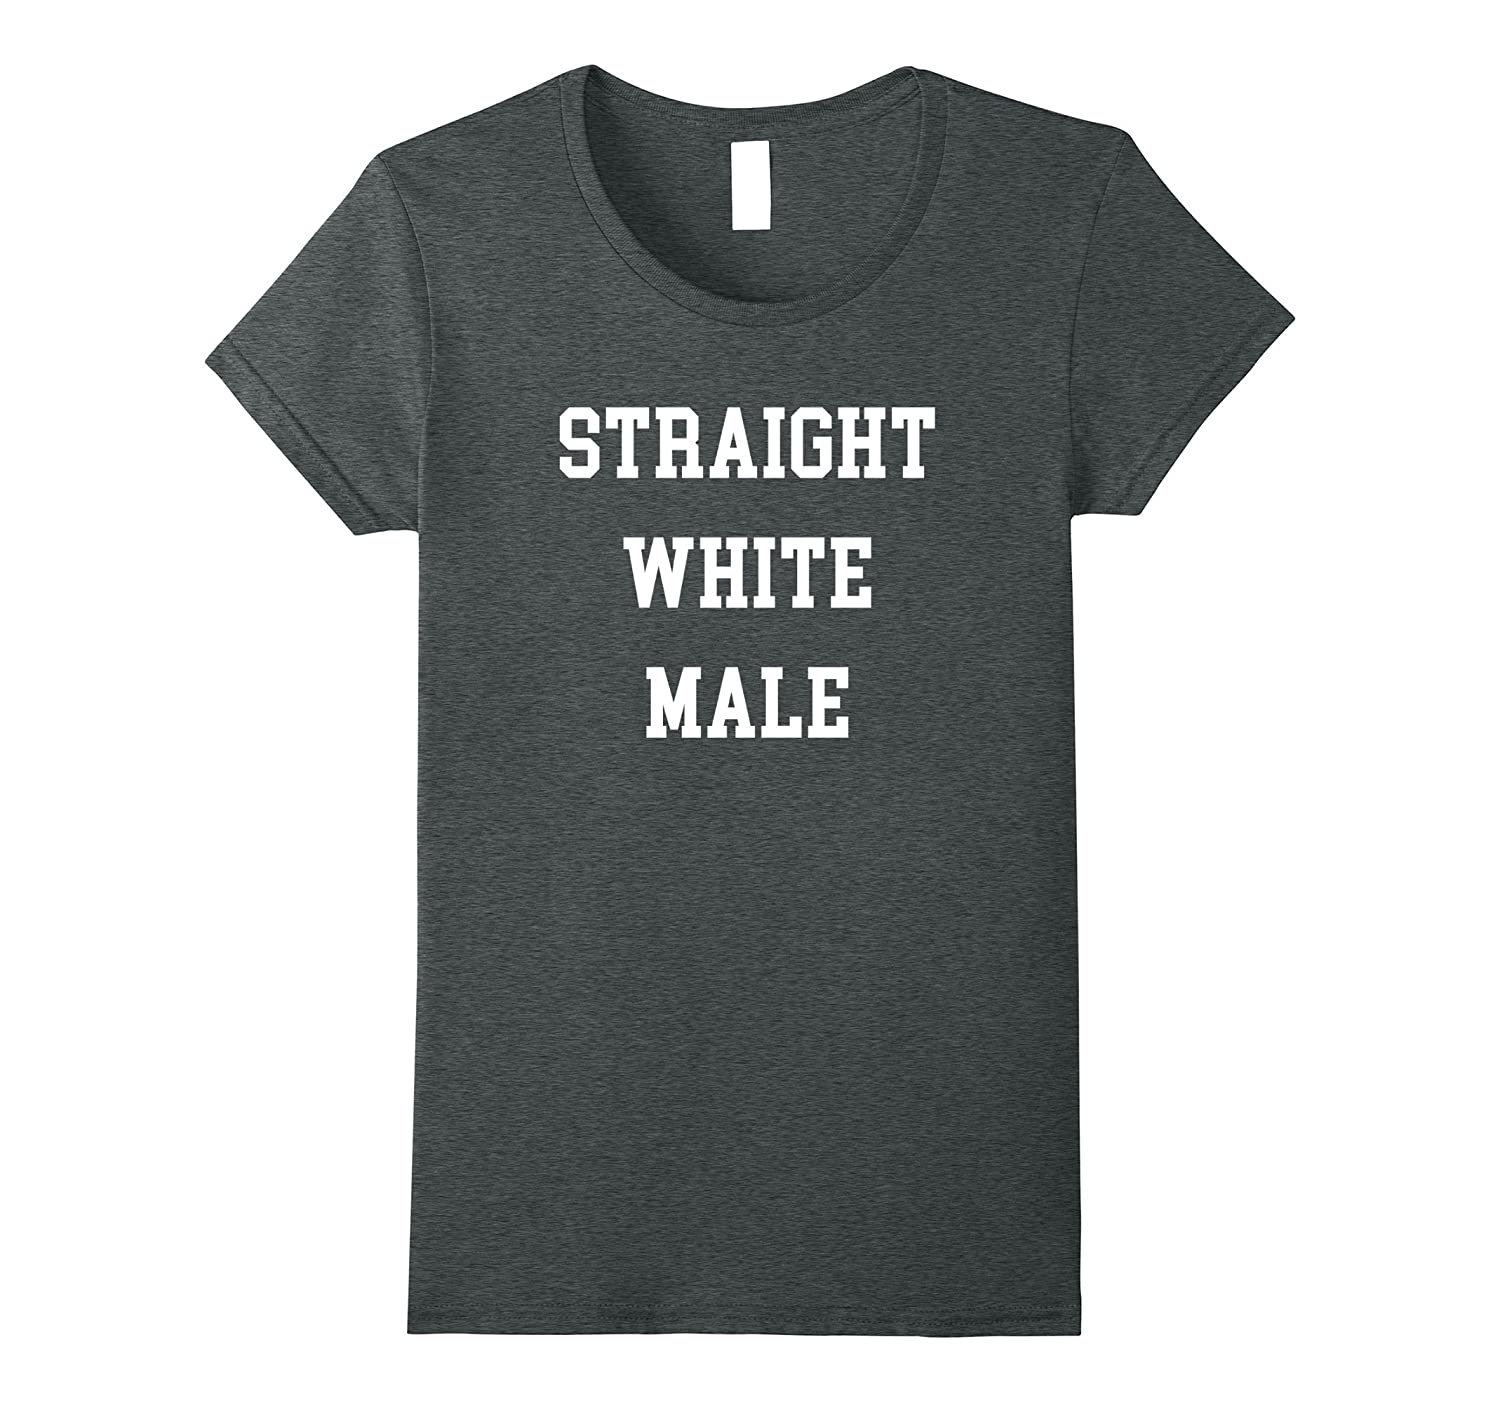 Straight White Male – Alt-Right, Anti-Antifa Shirt